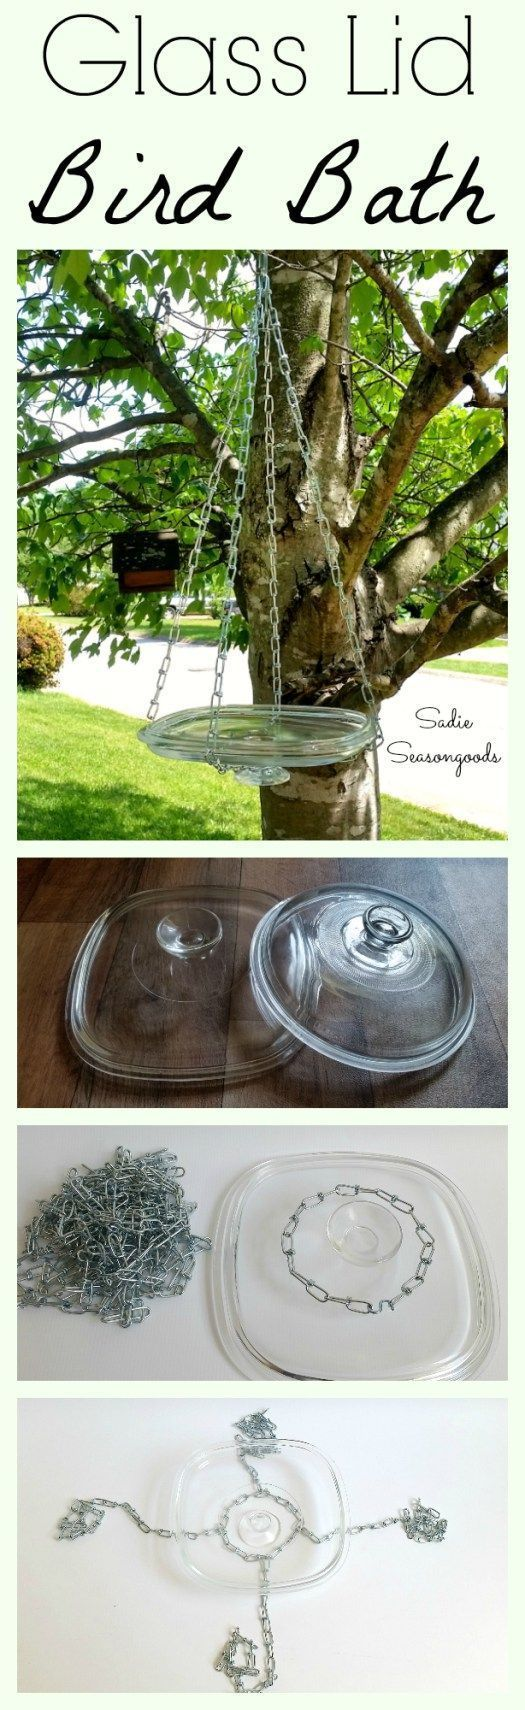 Glass casserole dish lids are ALWAYS a thrift store staple, so why not repurpose one into a DIY hanging bird bath (or feeder)? With this tutorial, there's no glass drilling at all! Easy, cheap upcycle project for your yard that anyone can do. It's shallow enough for small birds...AND easy to clean! #SadieSeasongoods / www.sadieseasongoods.com